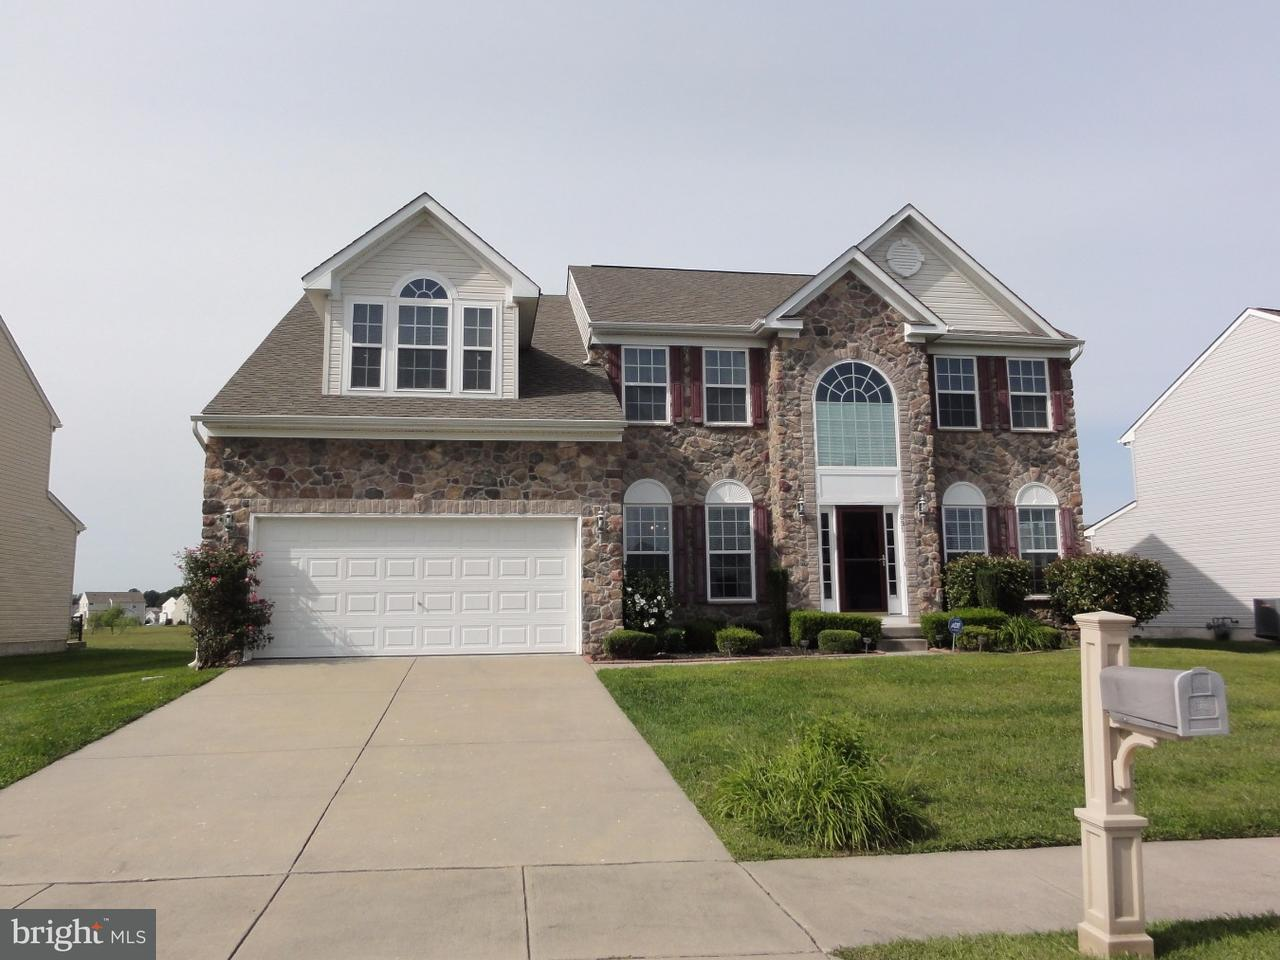 Casa Unifamiliar por un Venta en 891 WINDROW WAY Magnolia, Delaware 19962 Estados Unidos